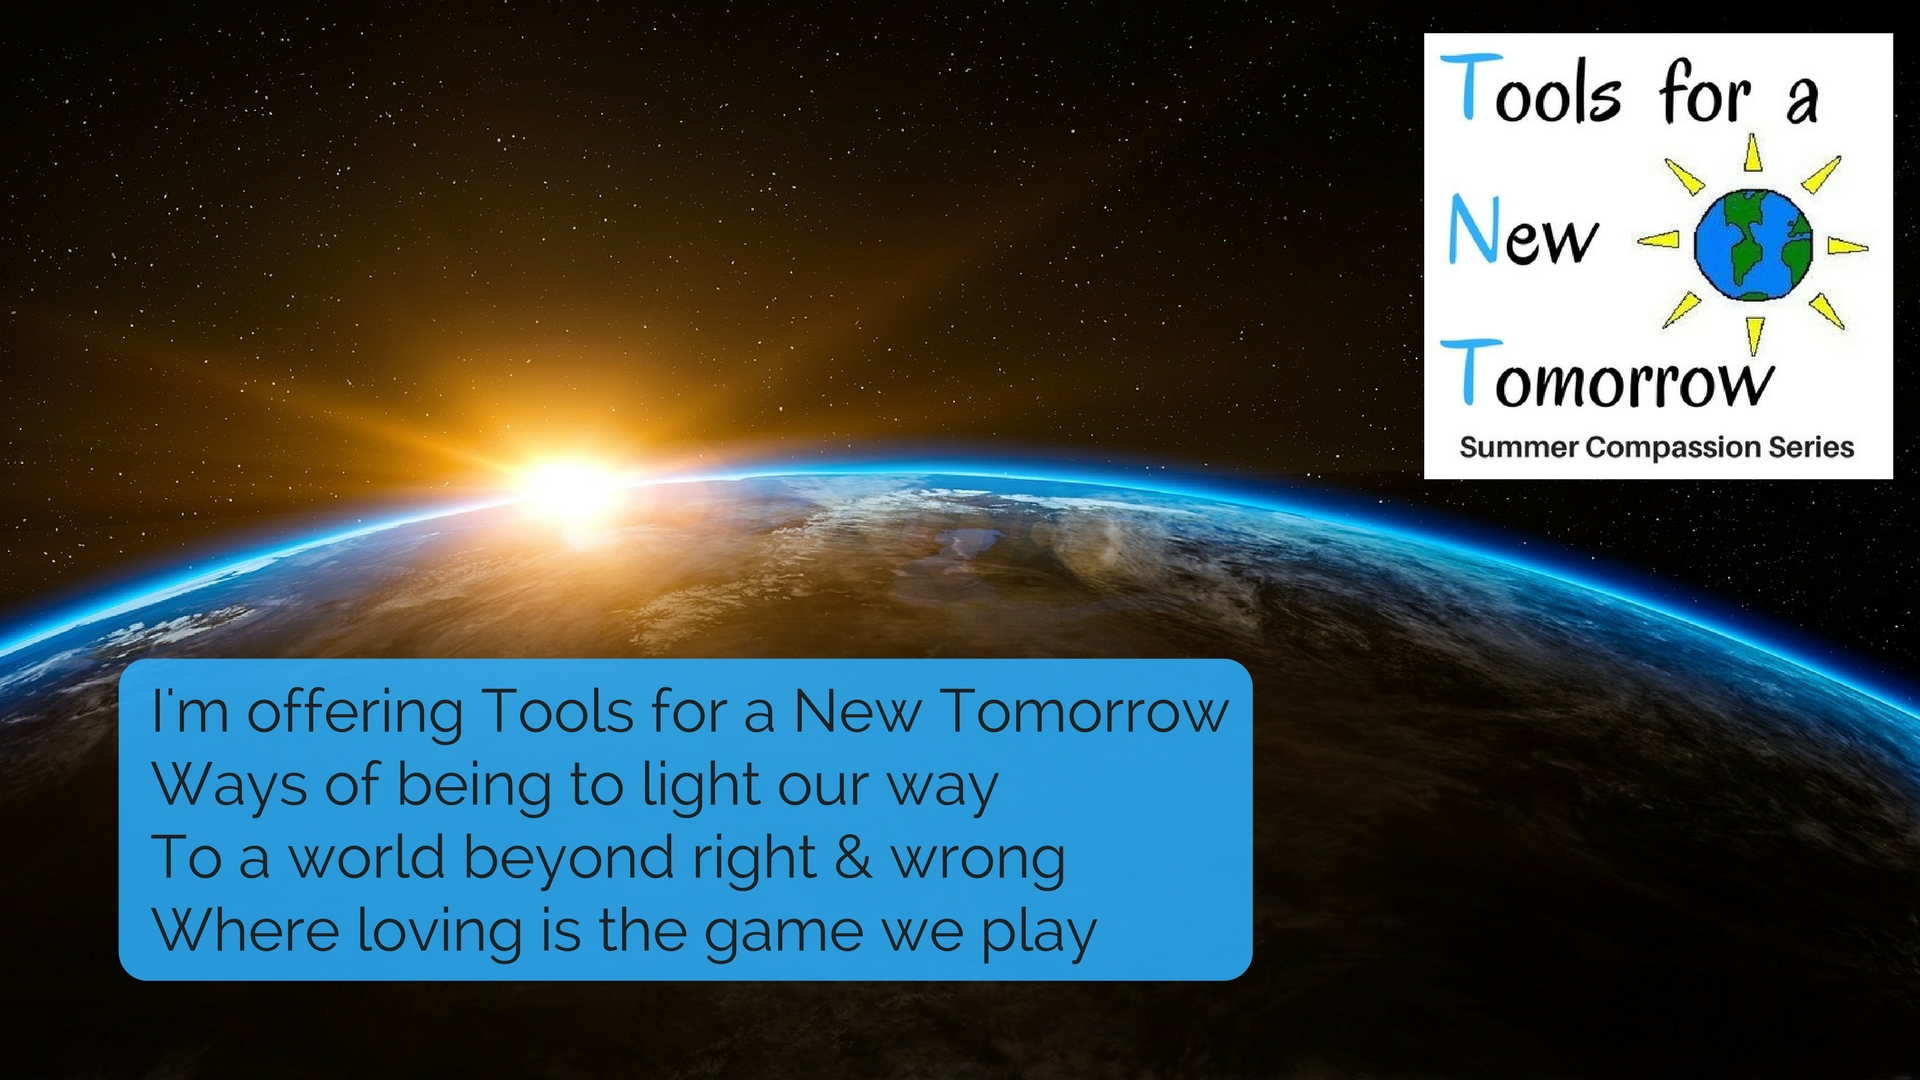 Invitation to the Tools for a New Tomorrow Summer Series